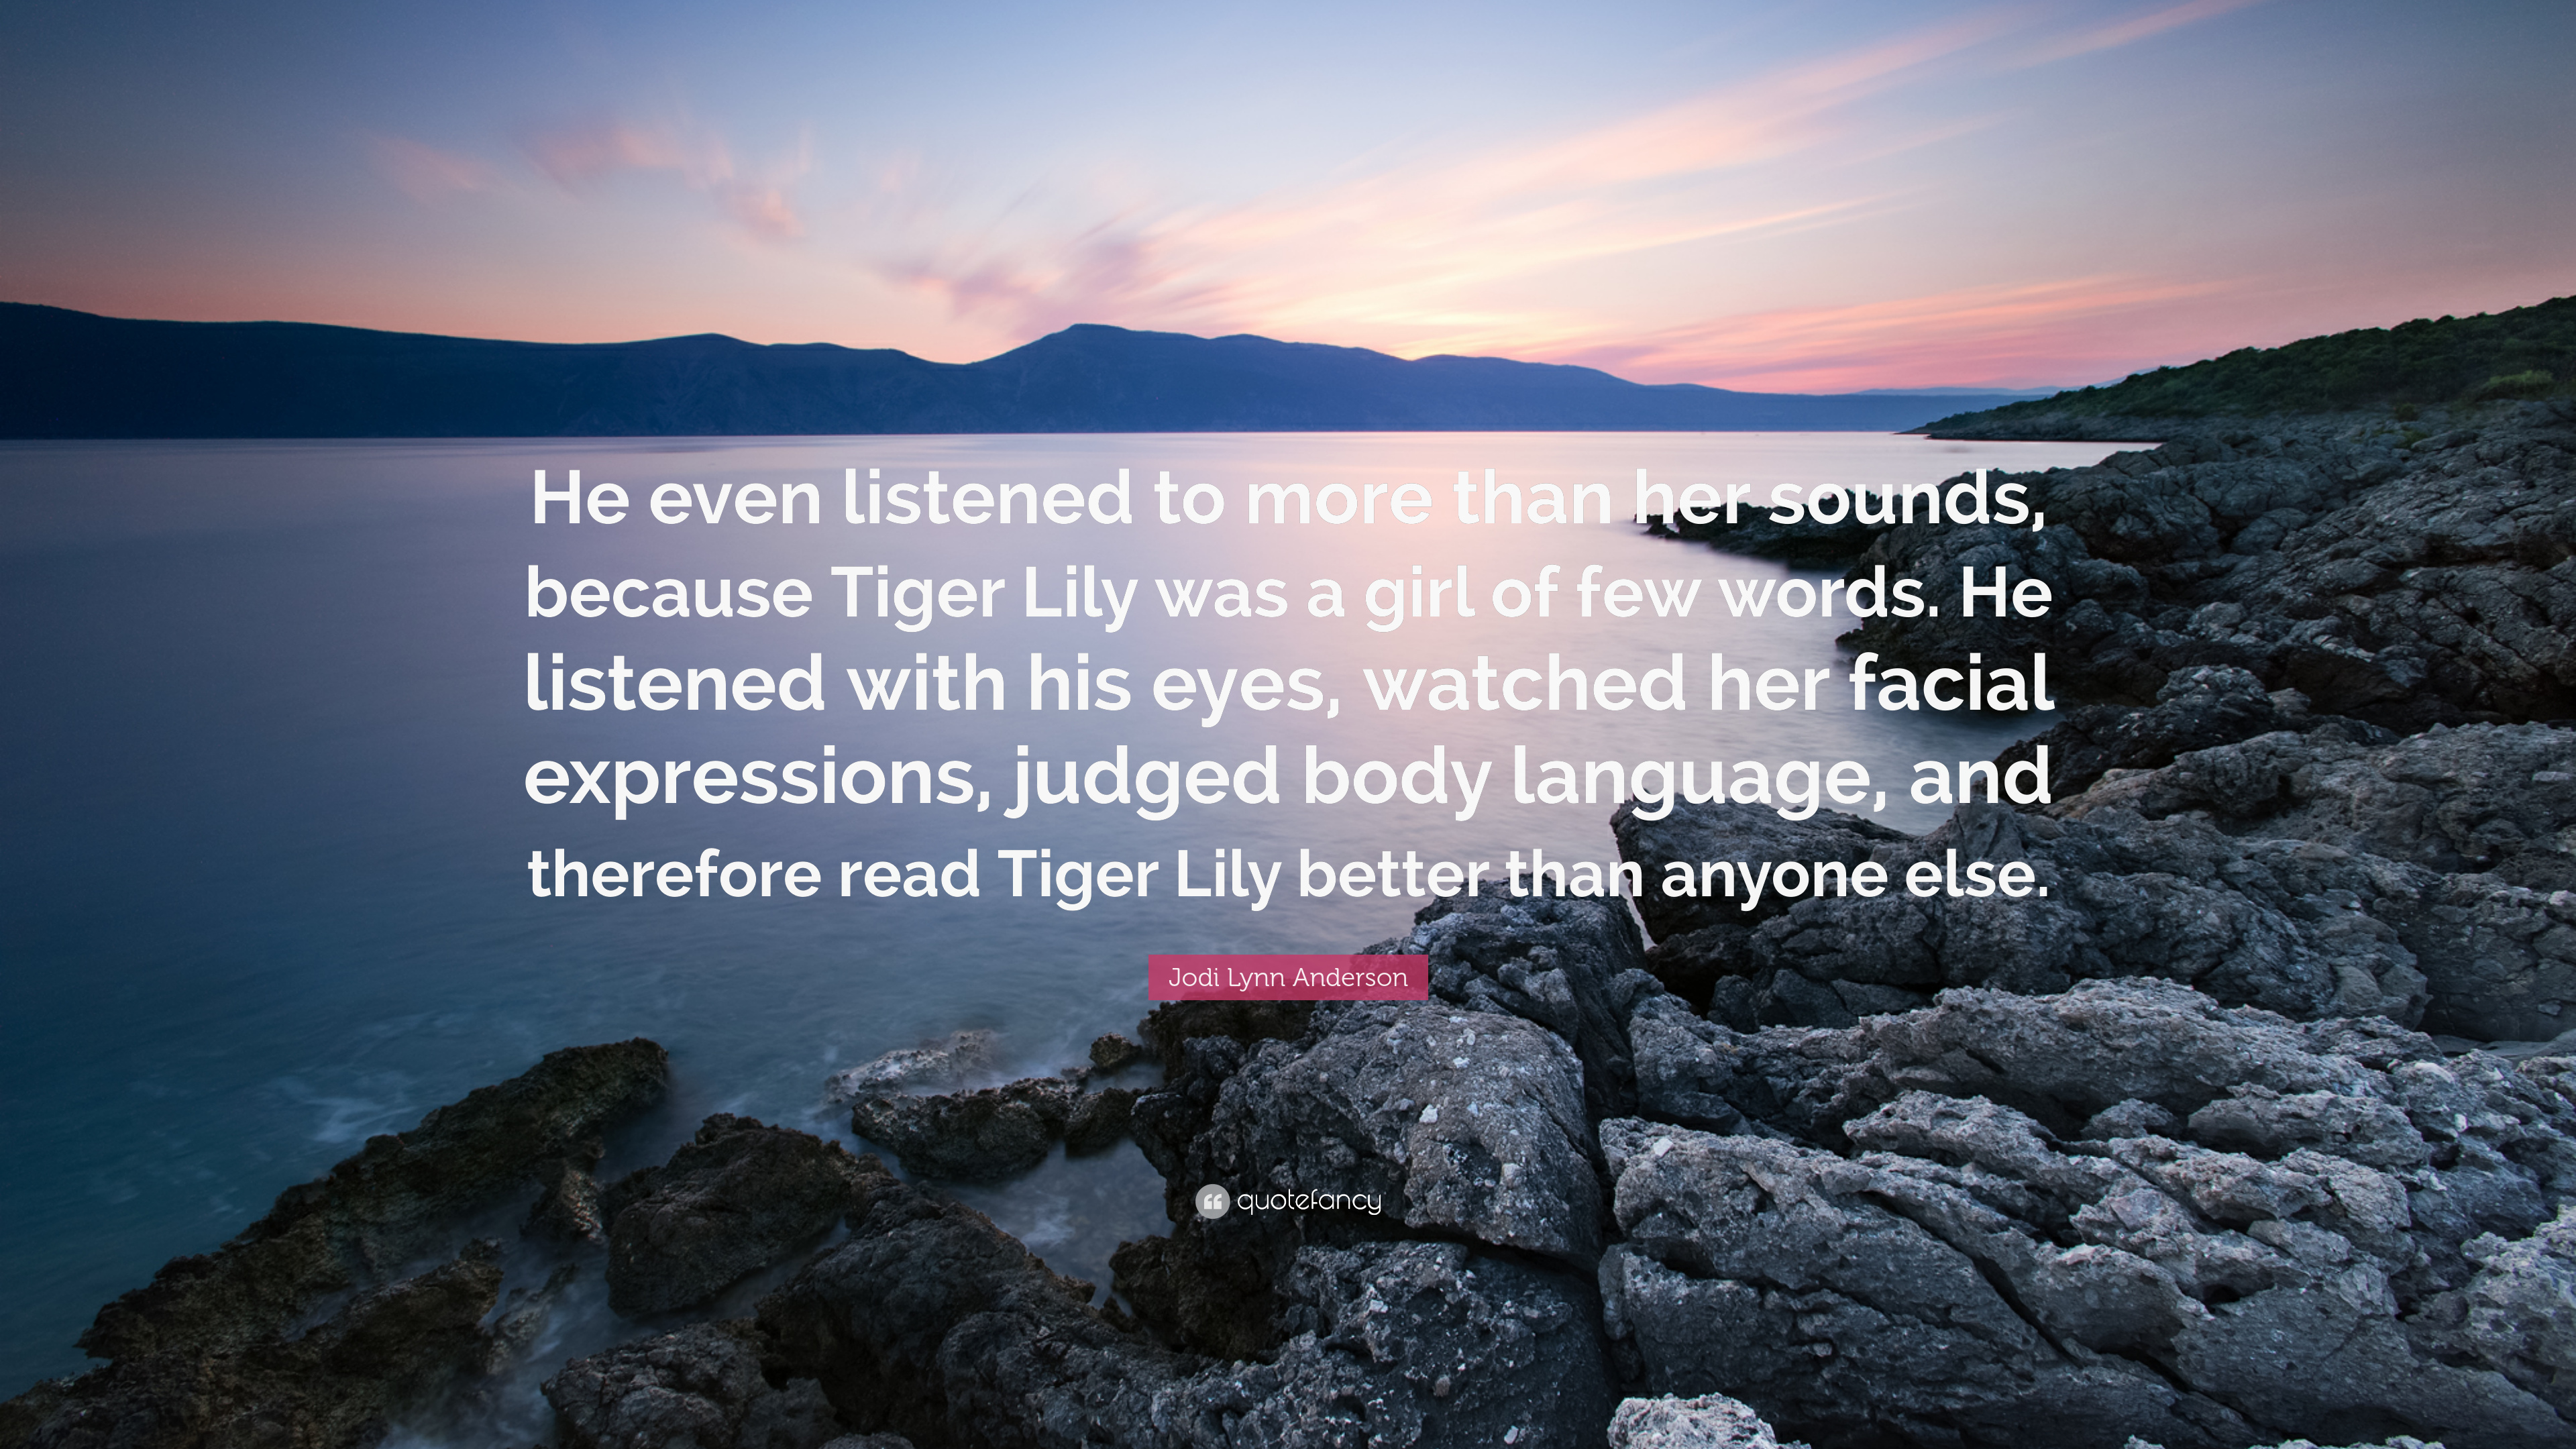 few words about tiger